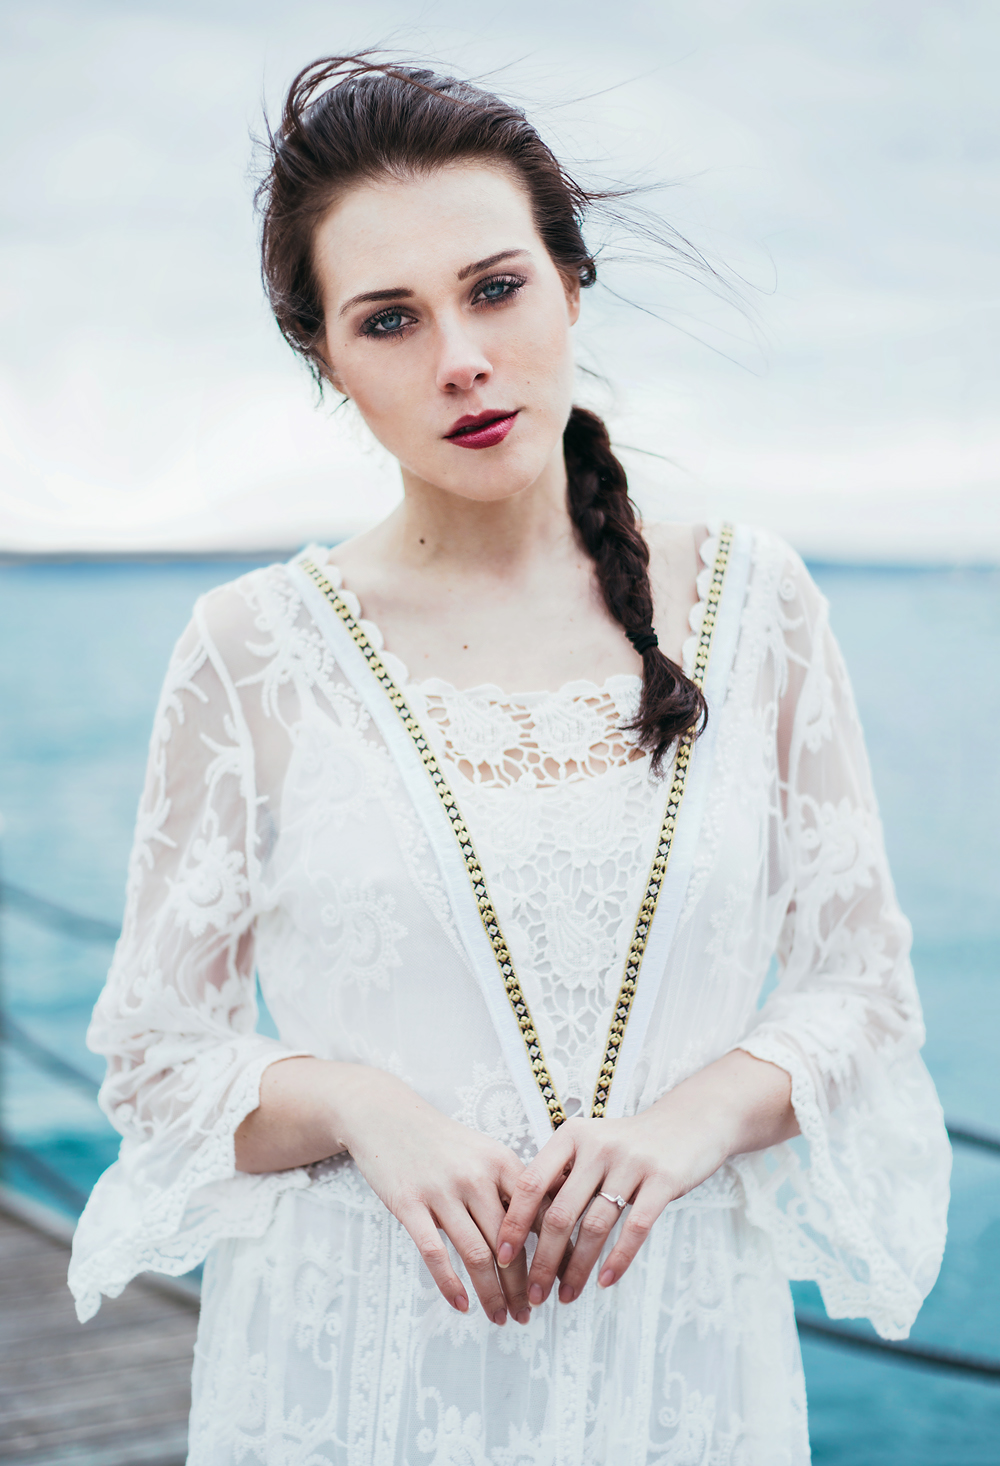 Eva Ahačevčič_Love, Eva_OOTD_FAshion blogger_Terminal 3_WHite dress_Bohemian_Details_Beauty